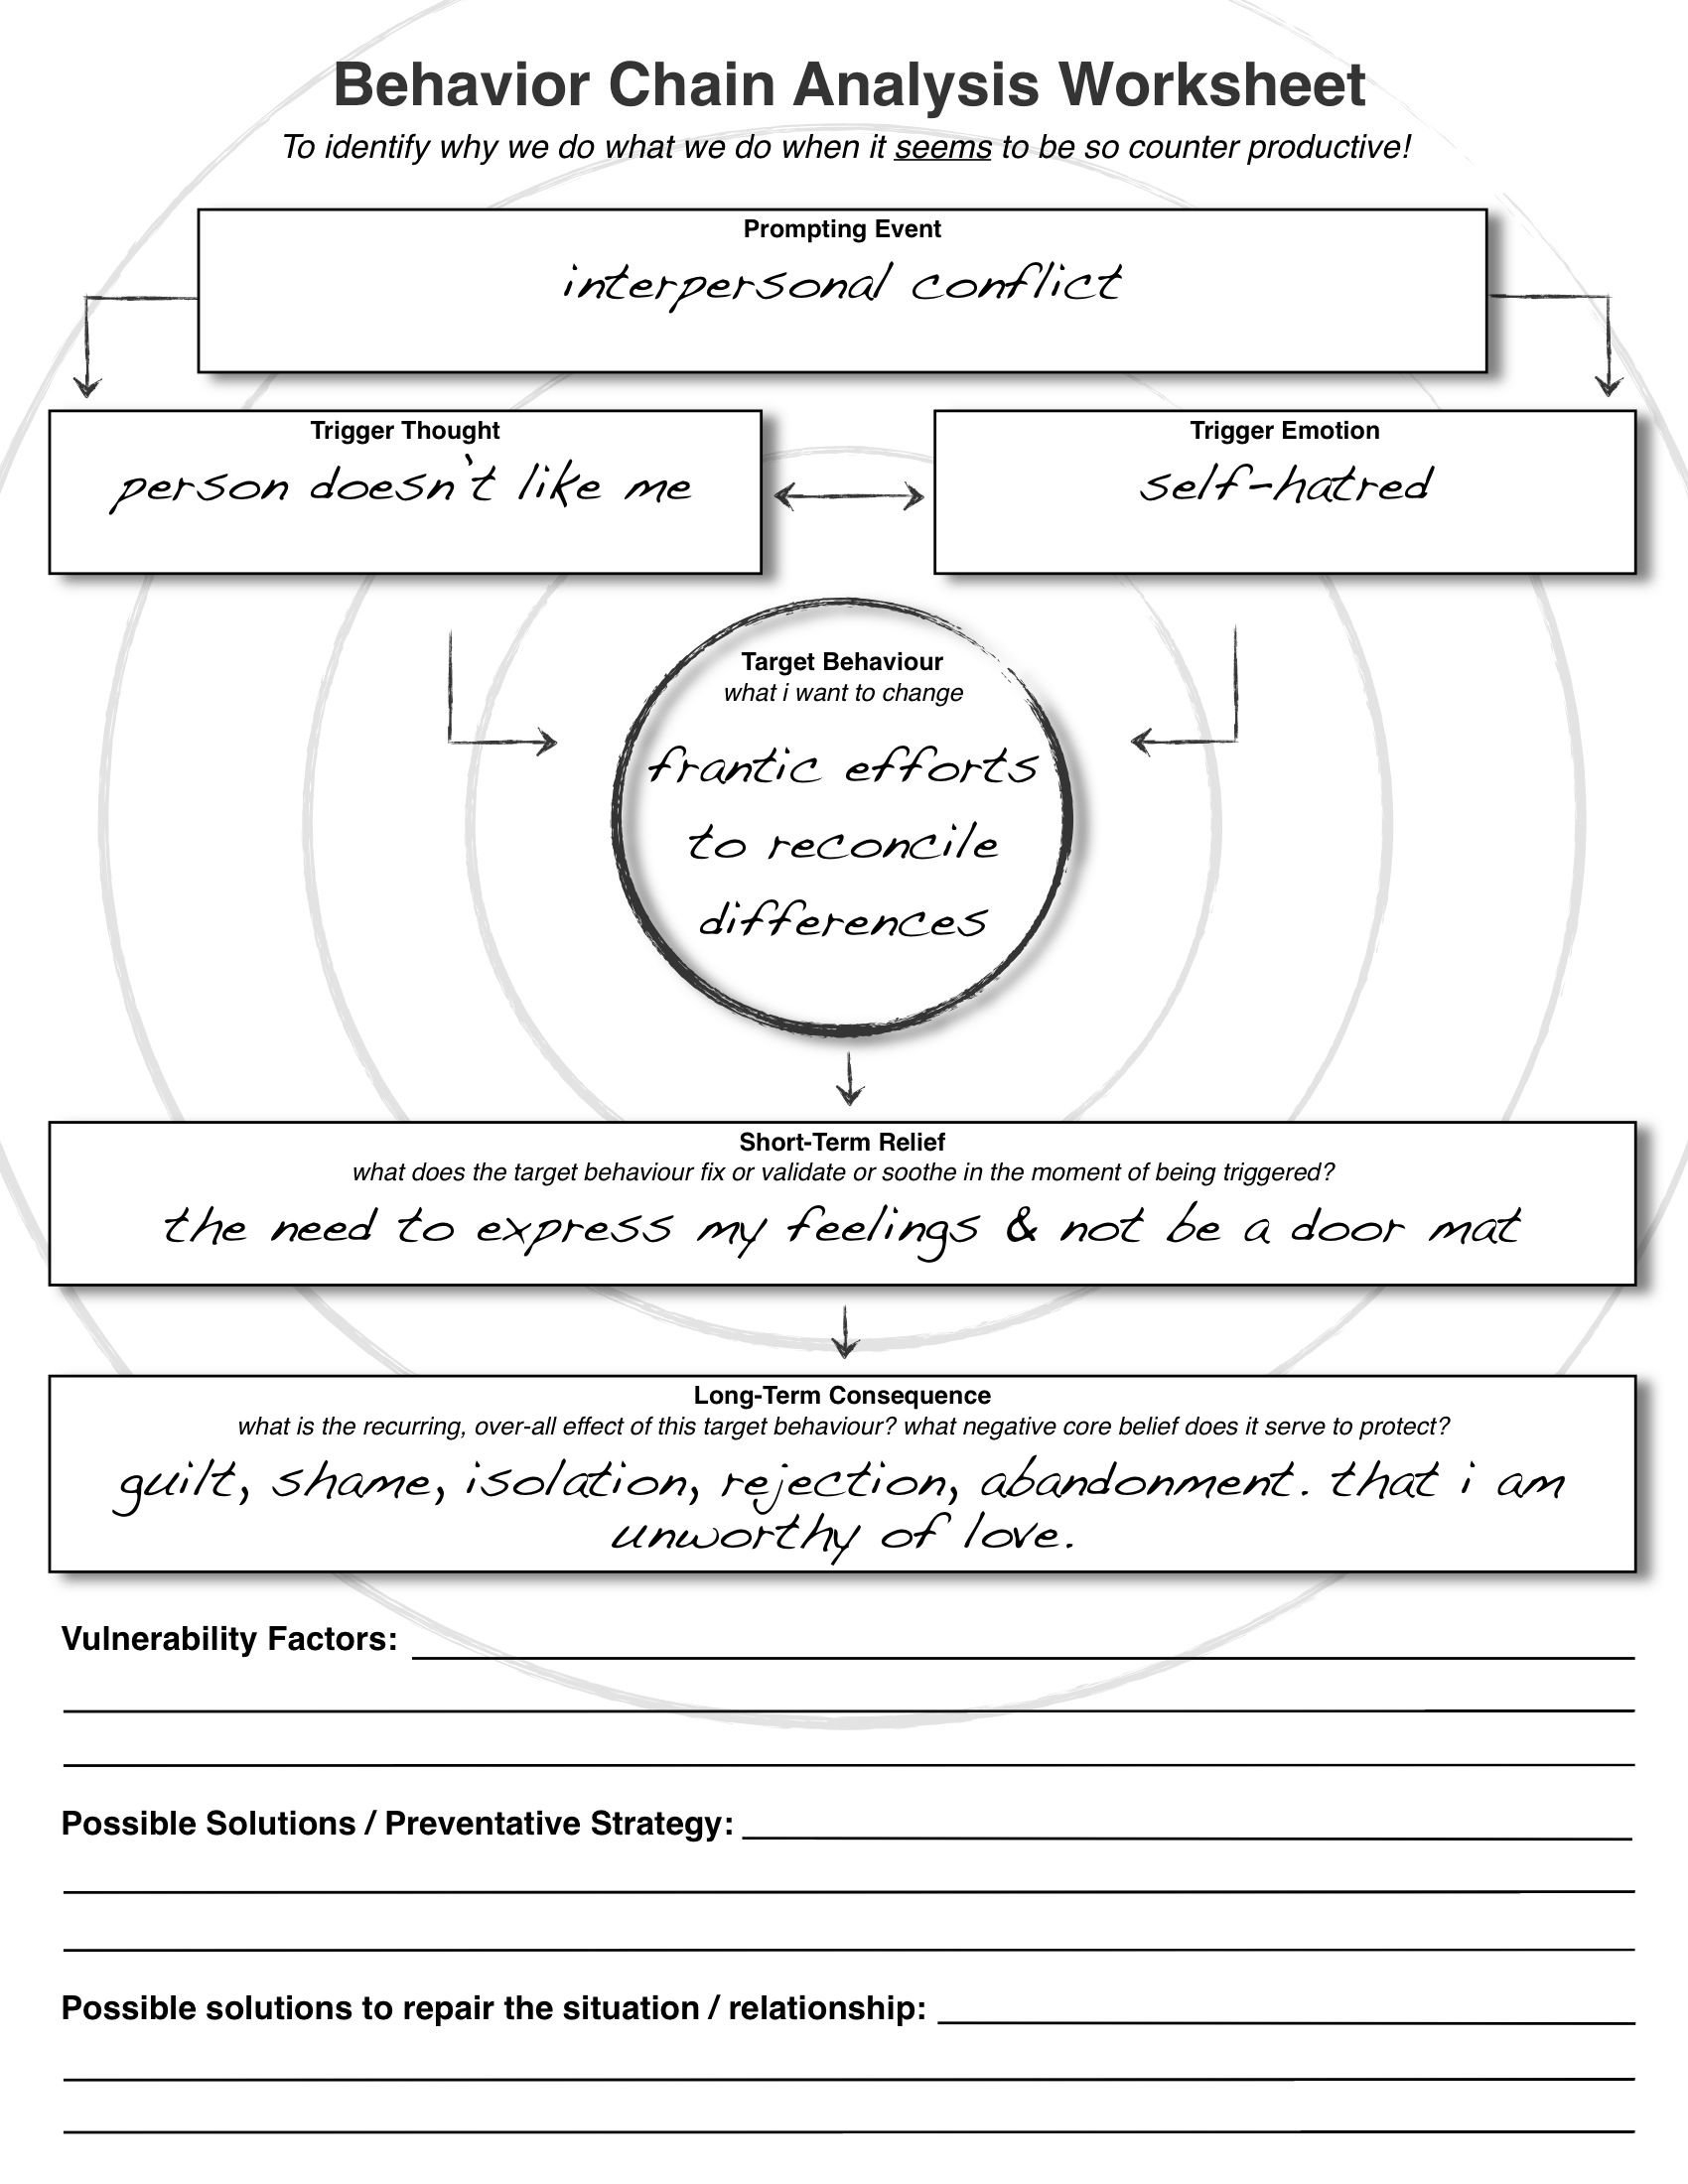 Worksheet Rebt Worksheet Rebt Worksheet Pdf Printables Behavior Within Anxiety Worksheets Pdf